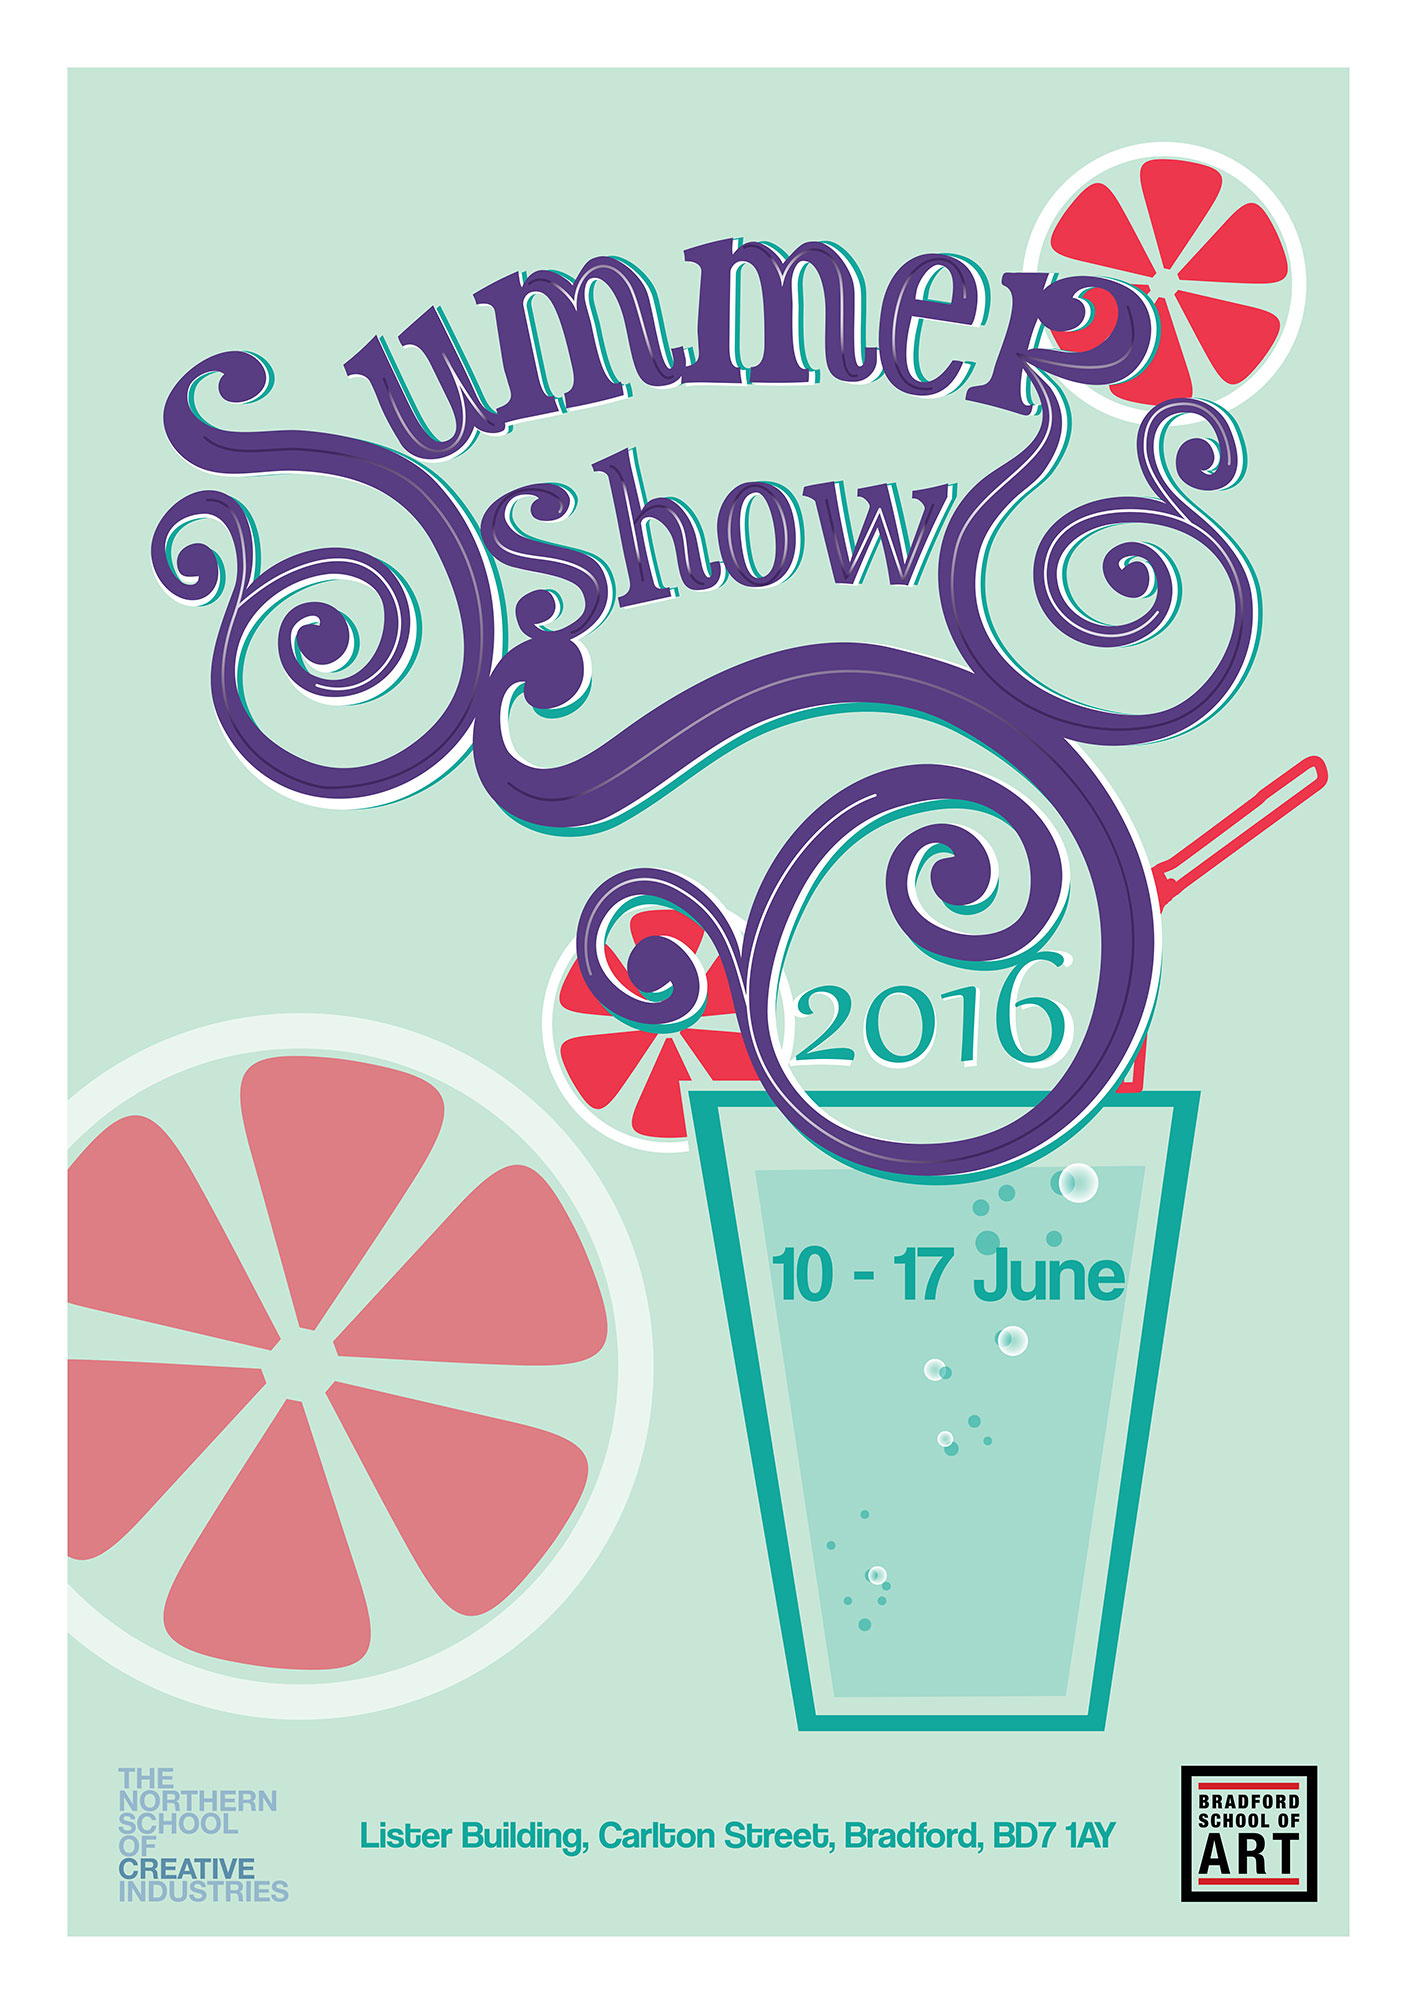 Bradford-School-of-Art_Summe-Show-Poster_web2